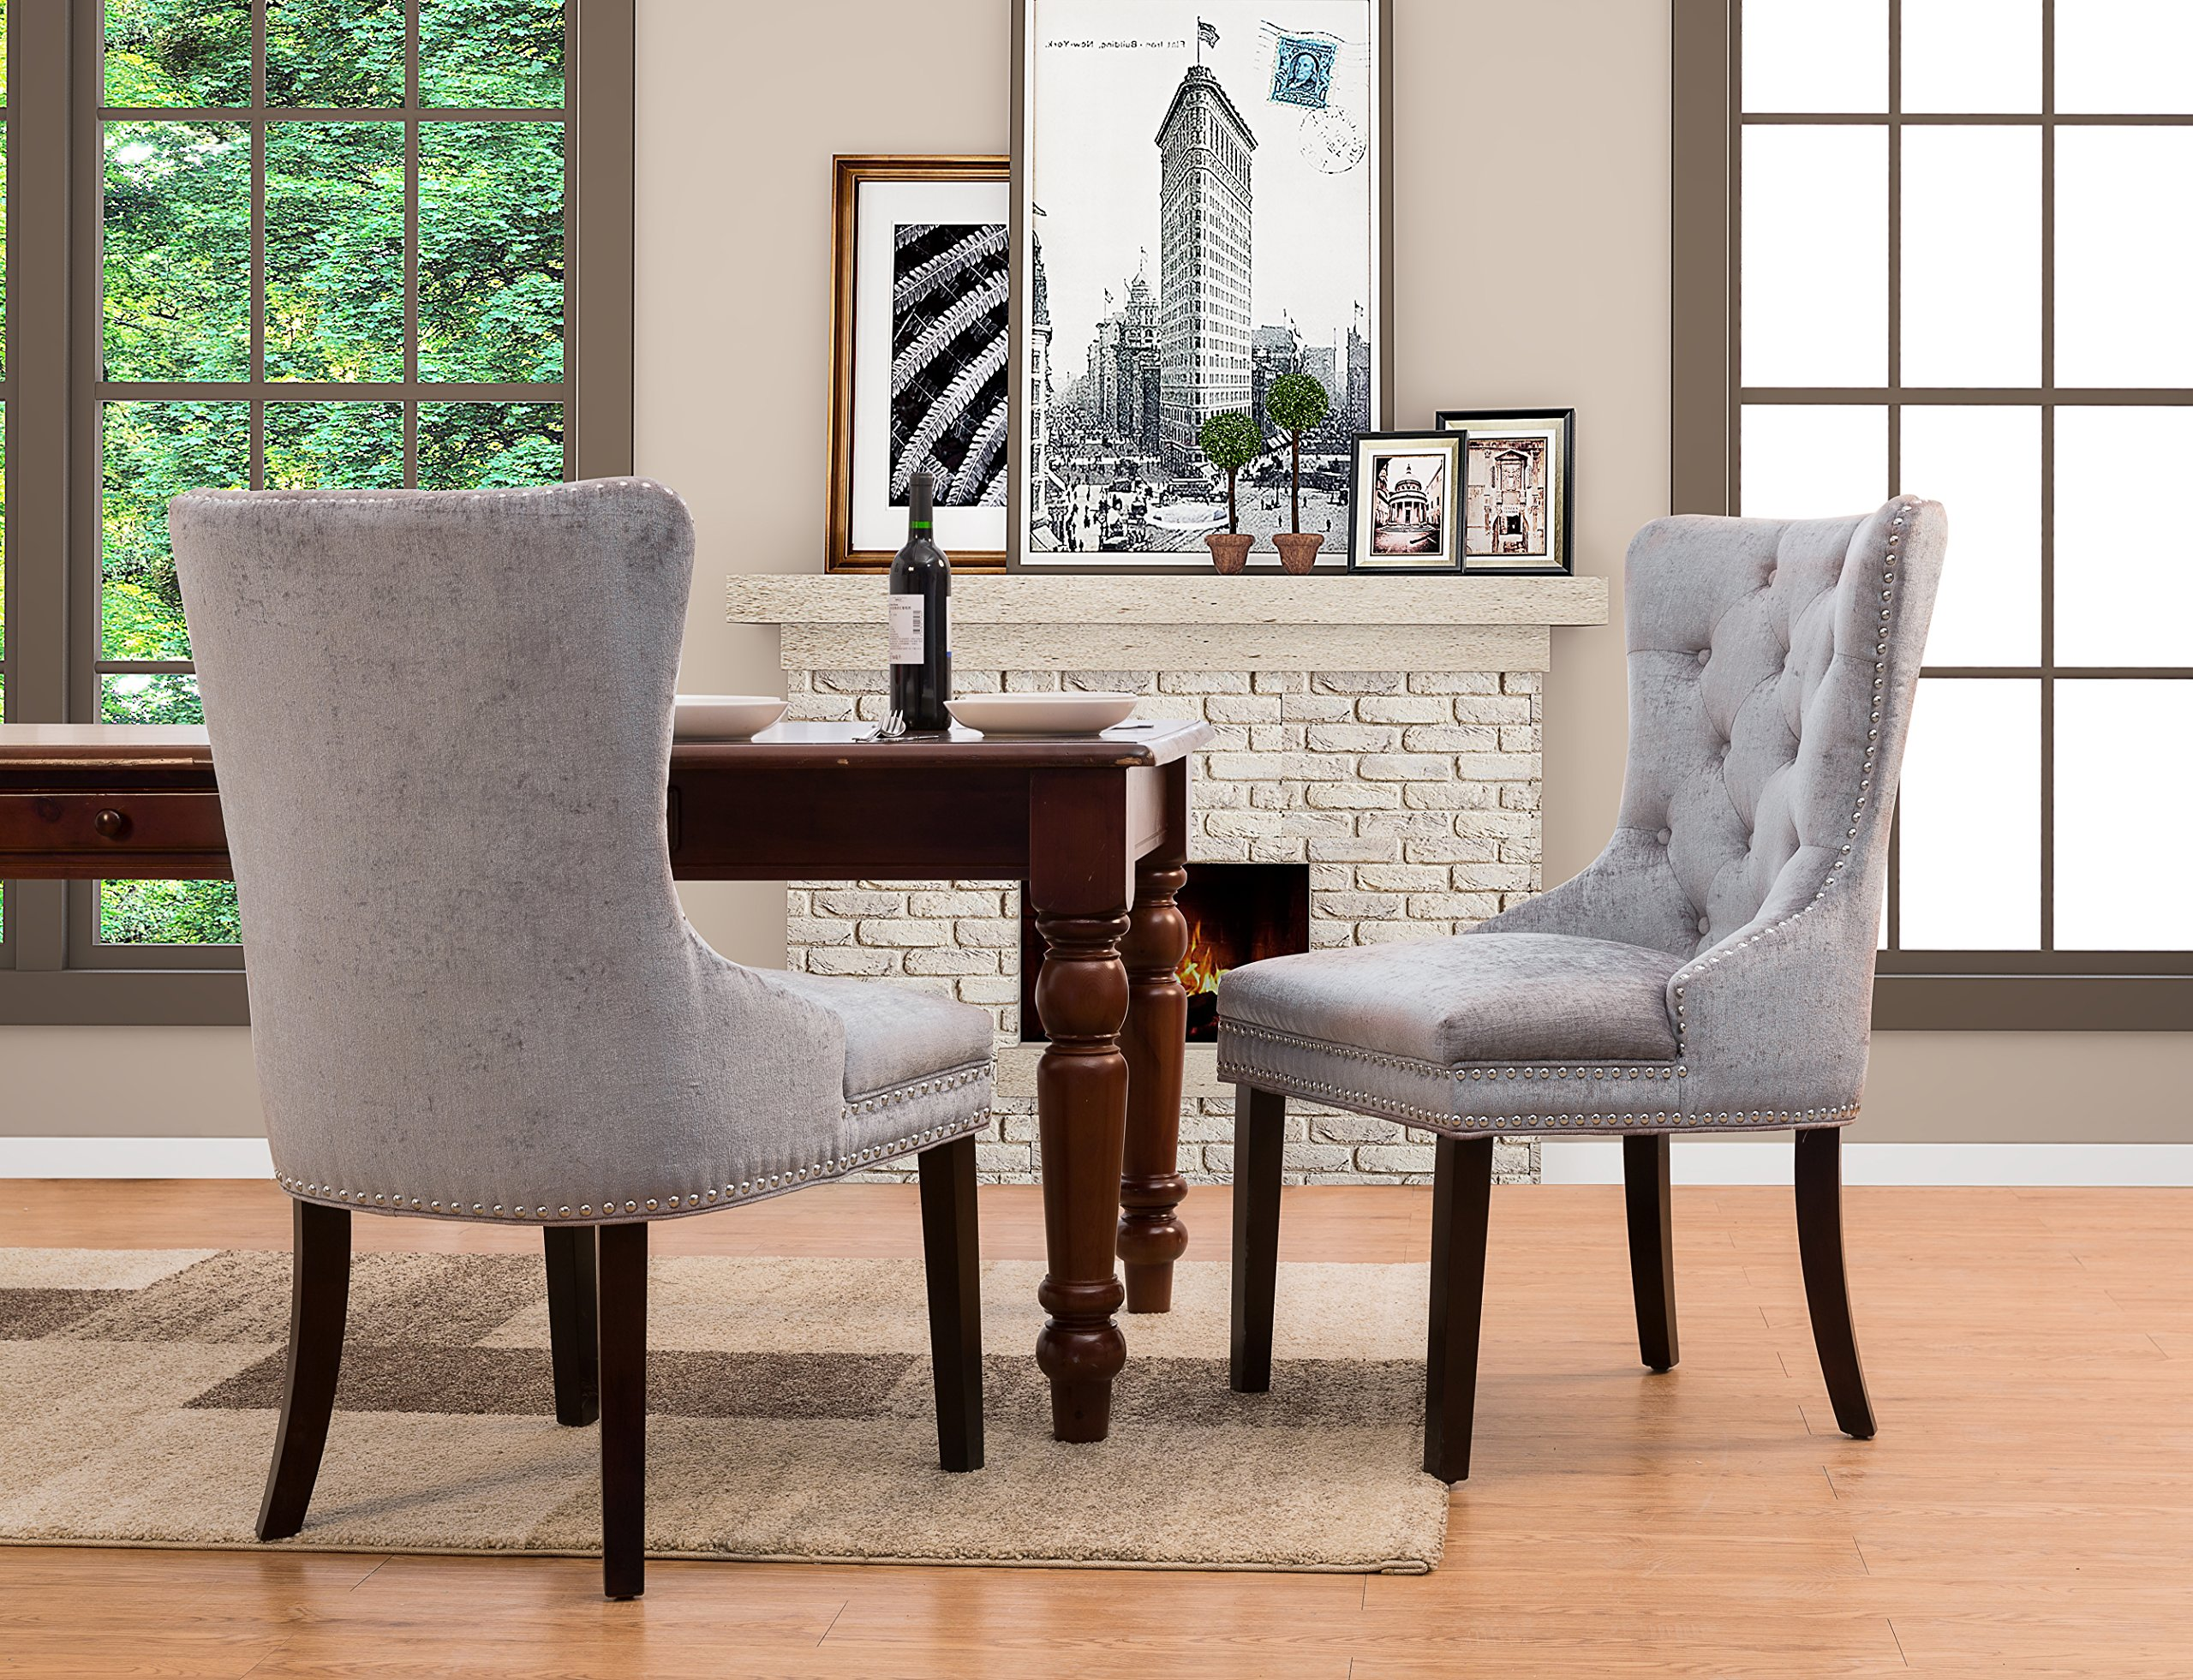 Iconic Home Diana Dining Side Accent Chair Button Tufted Velvet Upholstery Nail Head Trim Tapered Espresso Wood Legs, Modern Transitional, Grey, Set of 2 by Iconic Home